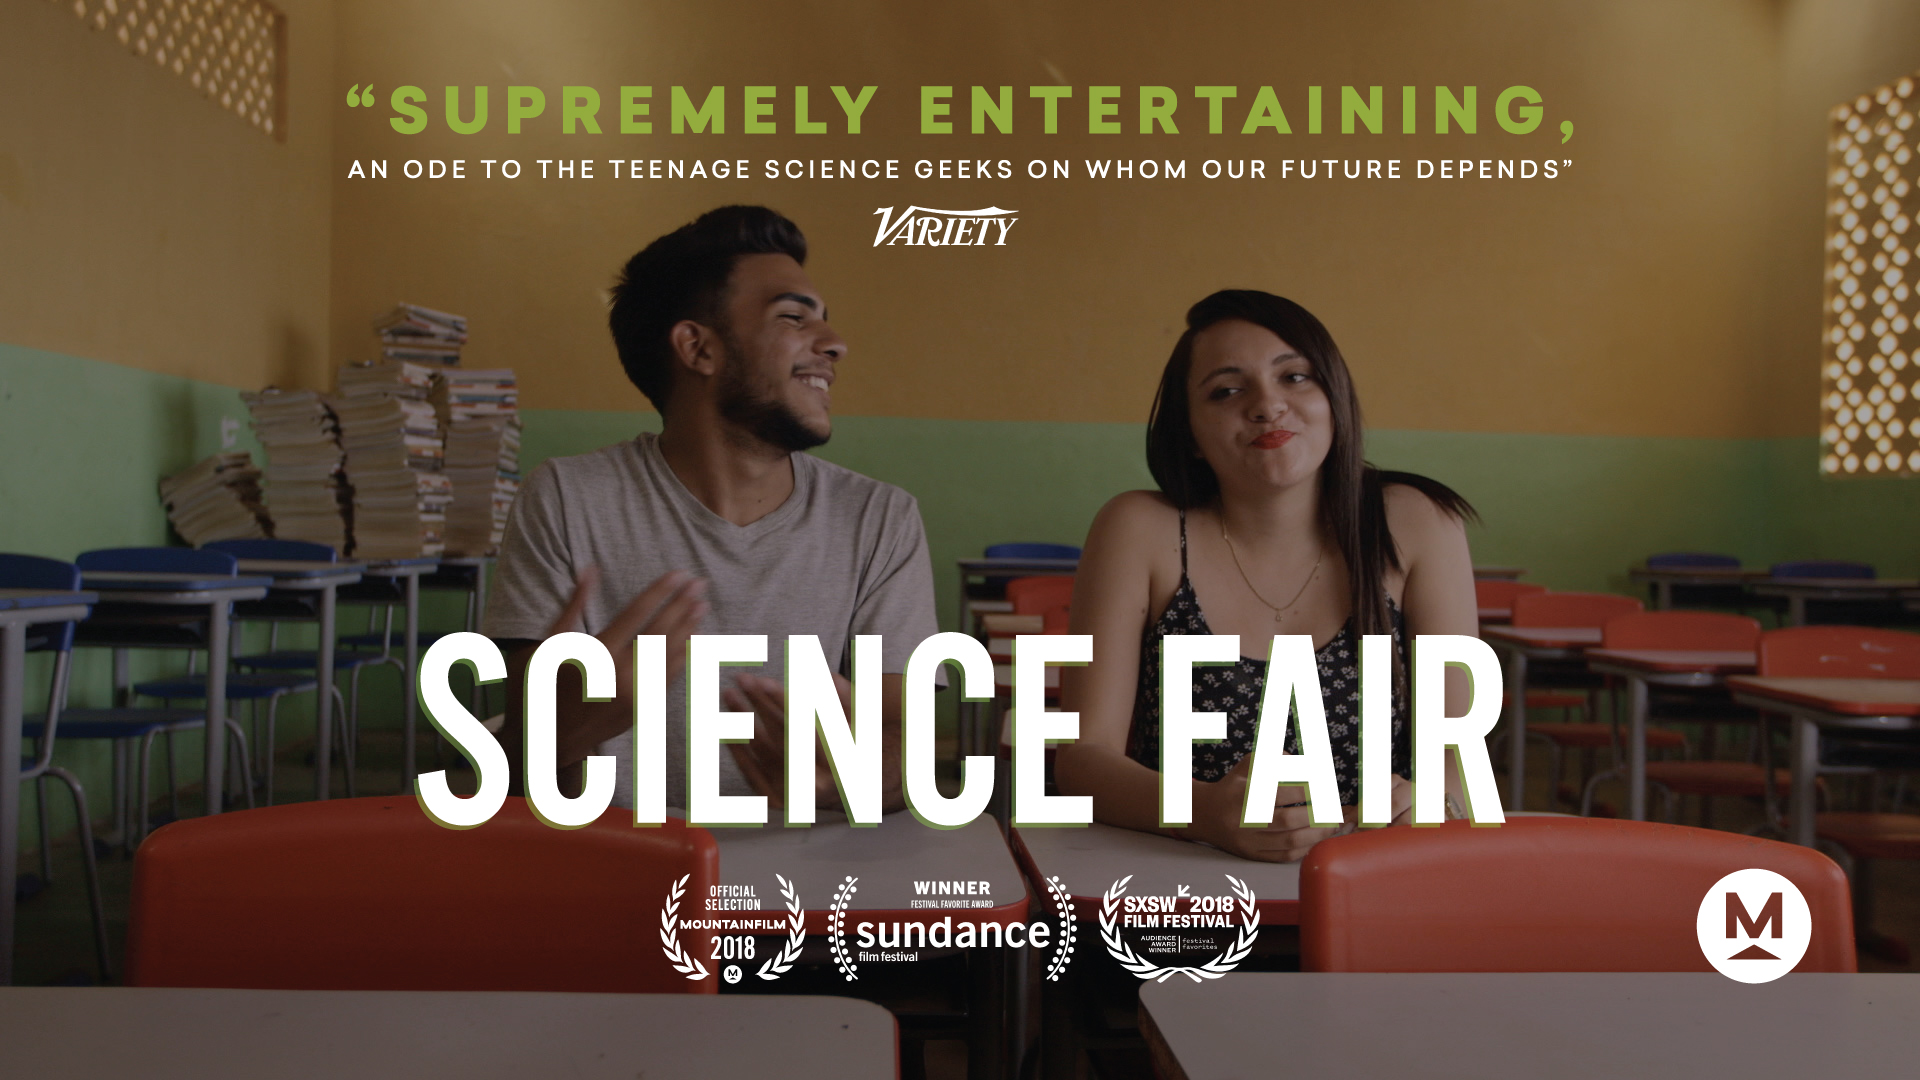 Science Fair: Annual Film Night Fundraiser